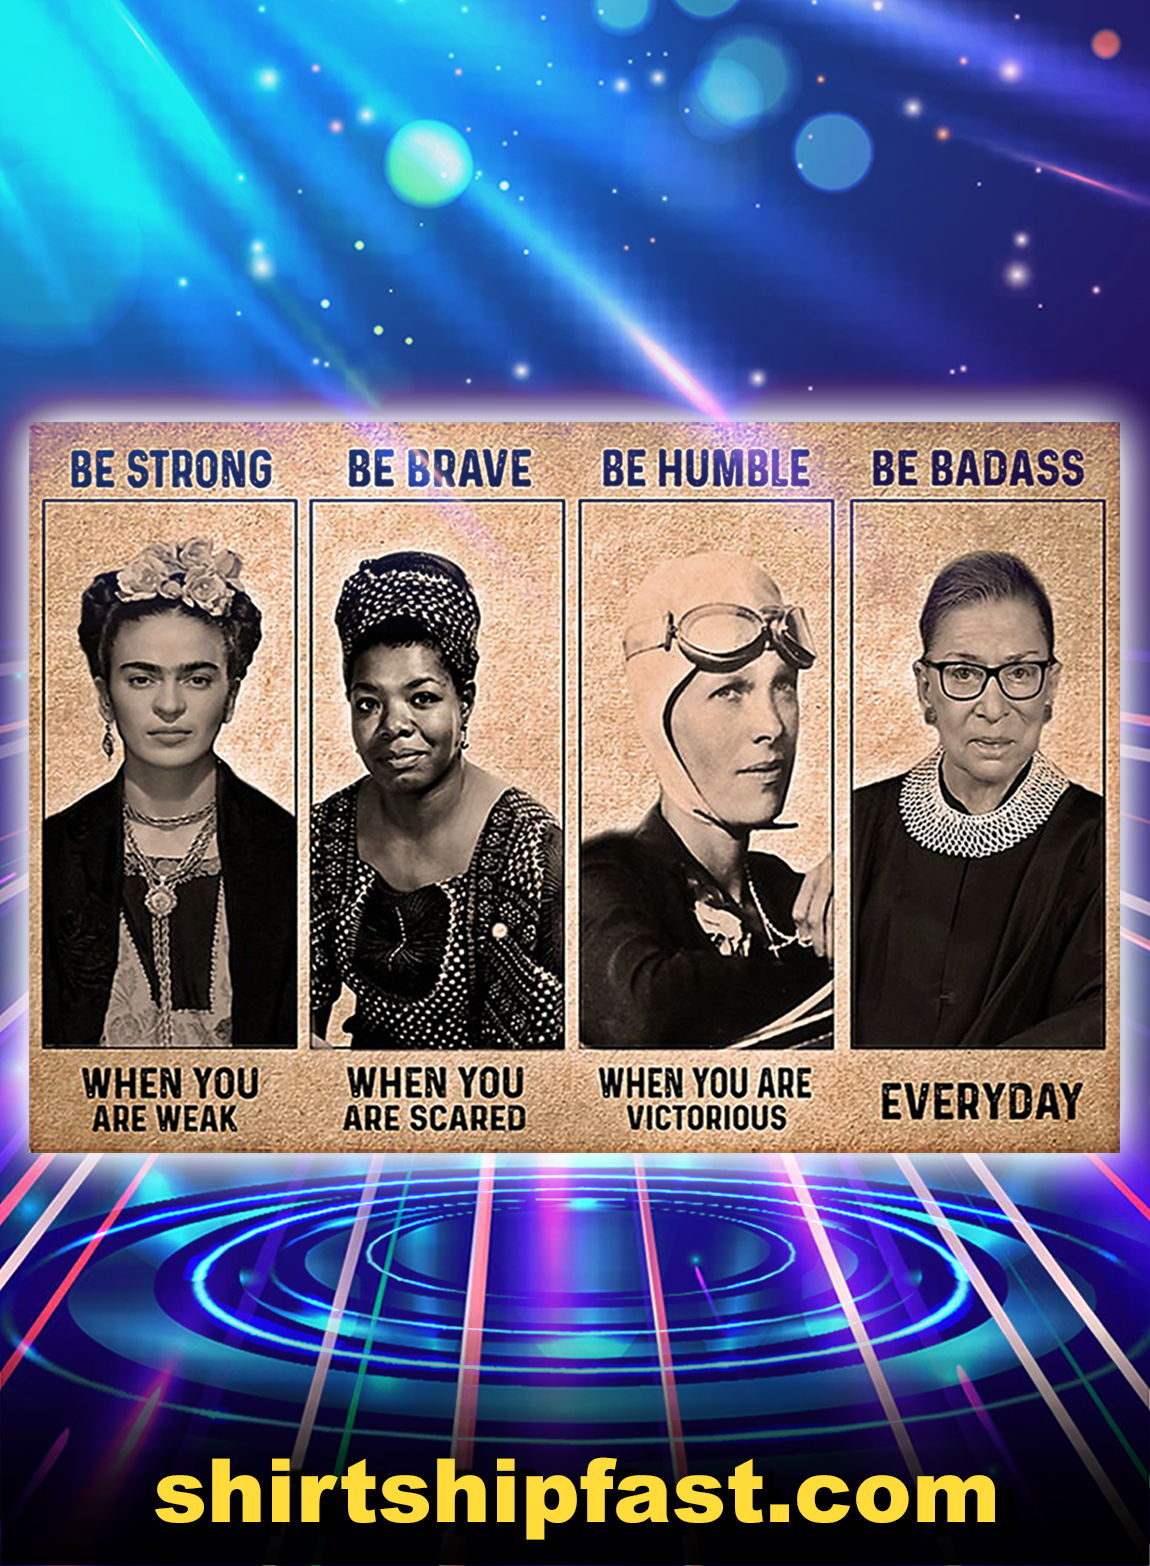 RBG Frida Kahlo feminist be strong be brave be humble be badass poster - A3